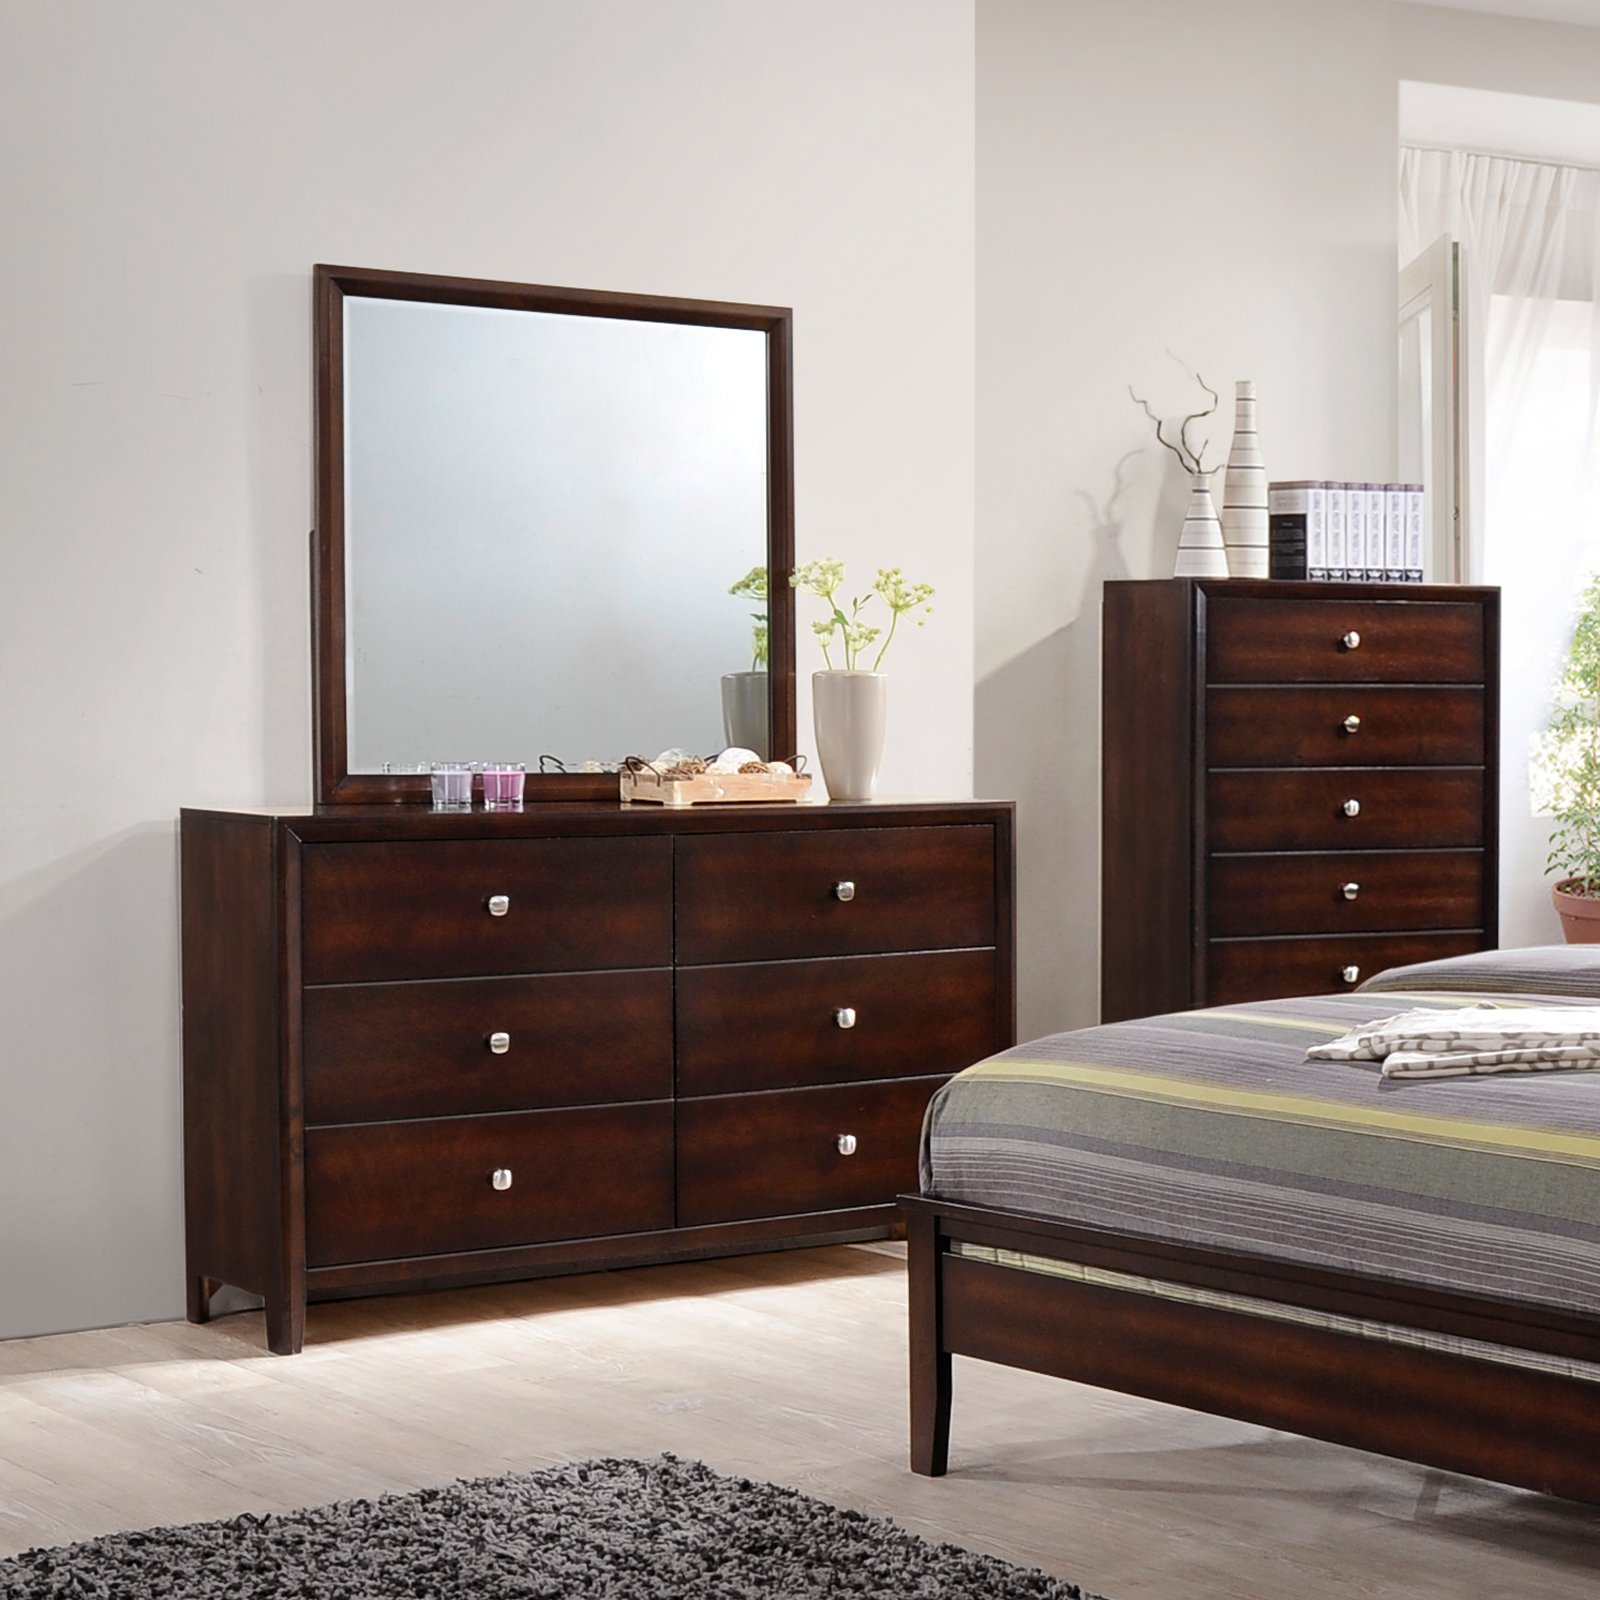 United Furniture Jackson 6 Drawer Dresser with Optional Mirror